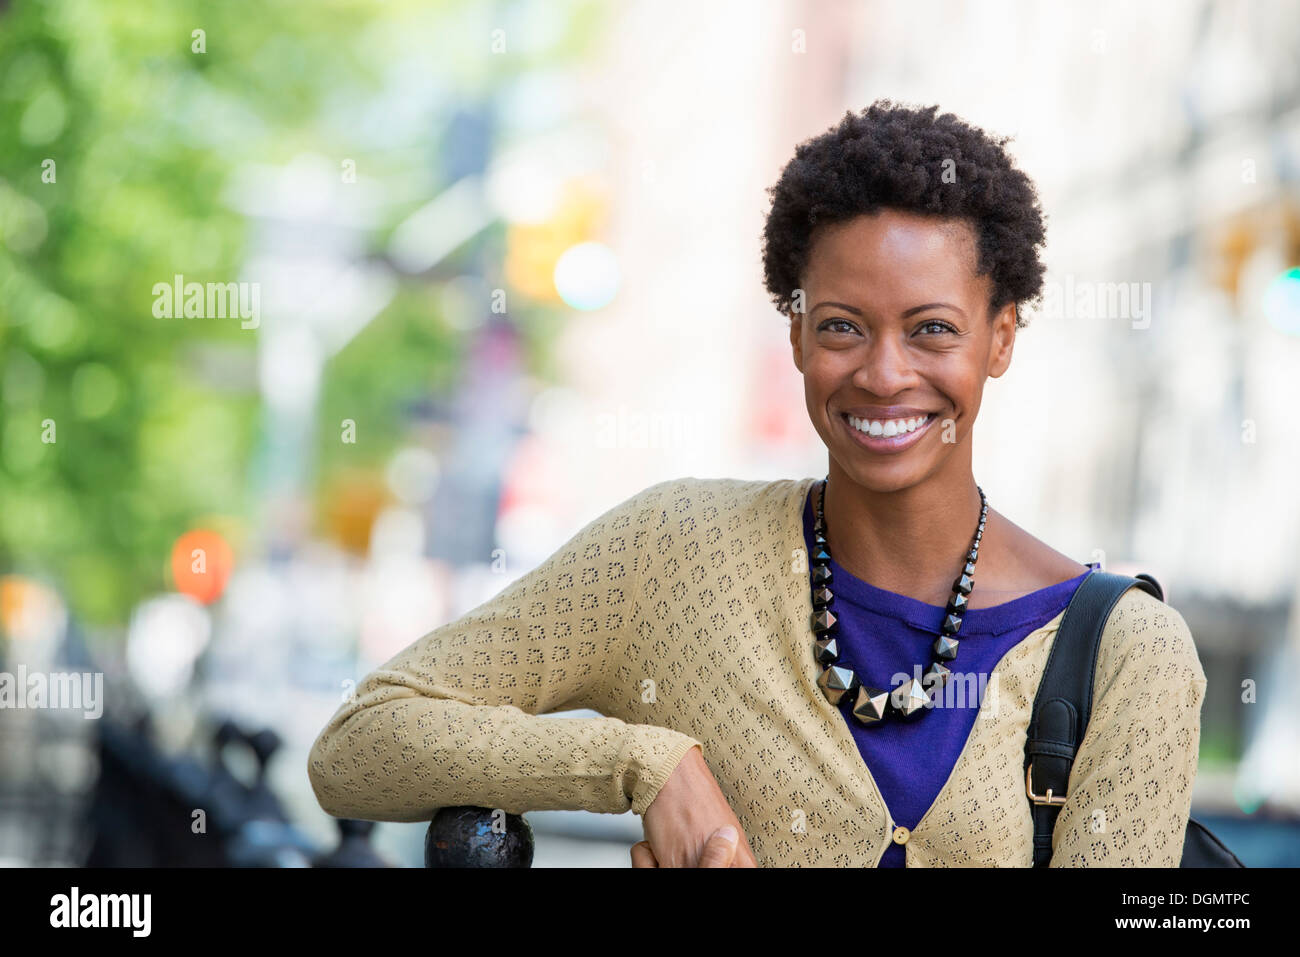 City. A woman in a purple dress, on the city street. - Stock Image